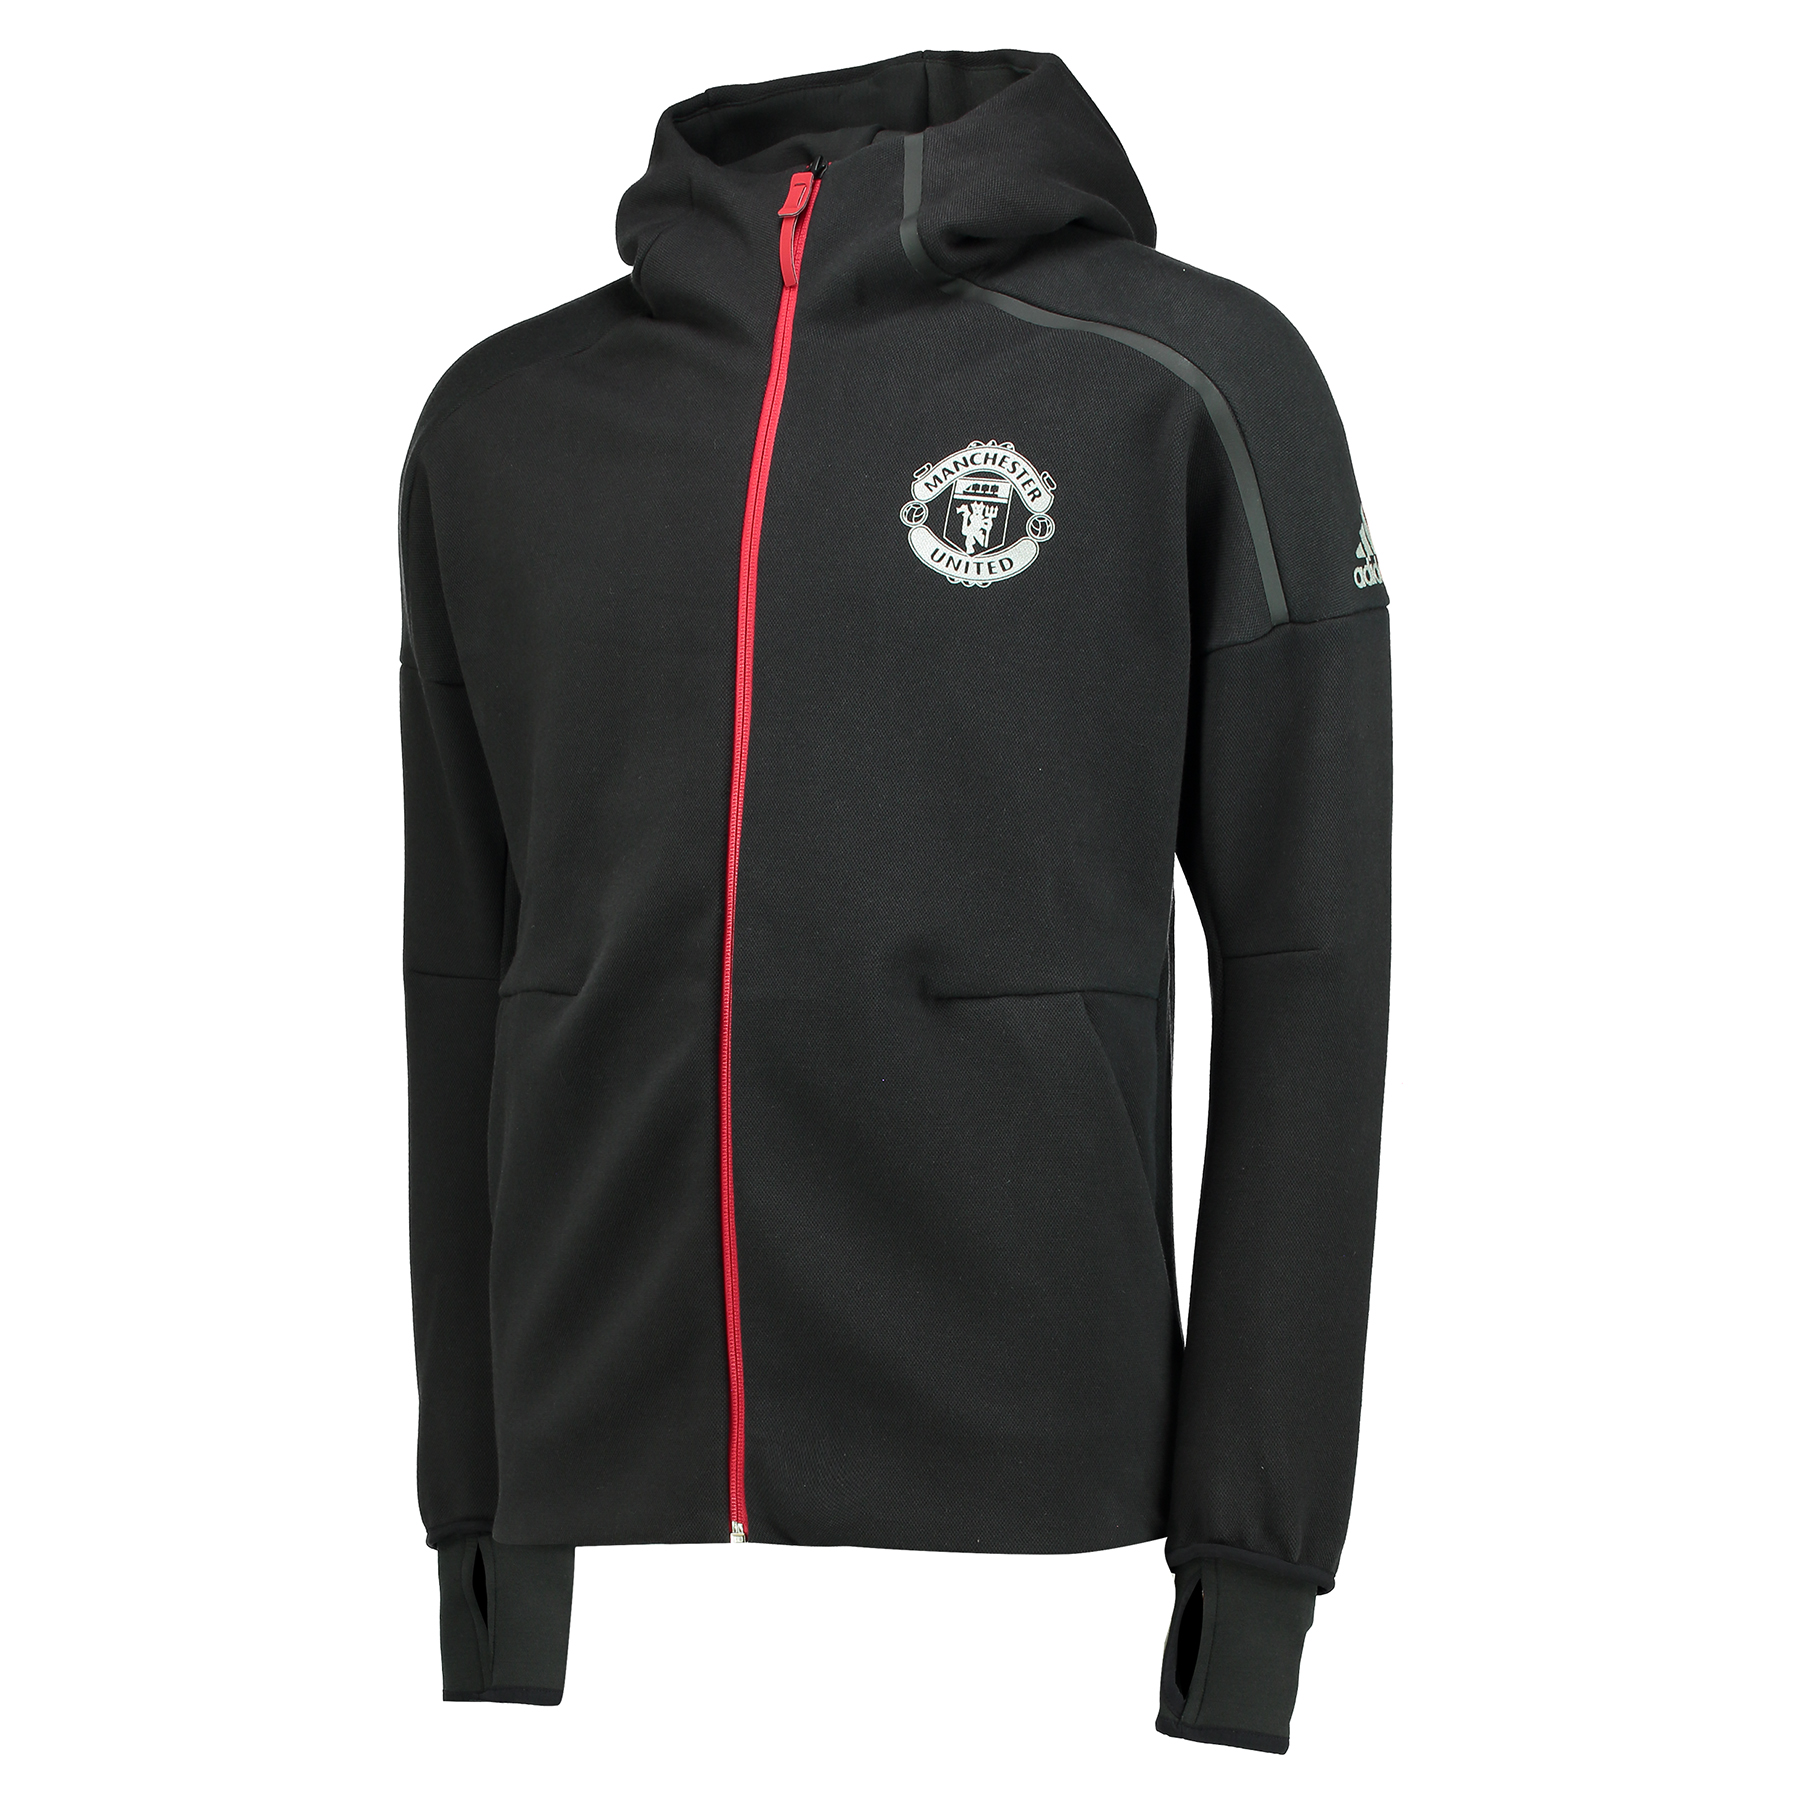 Manchester United ZNE Anthem Jacket - Black